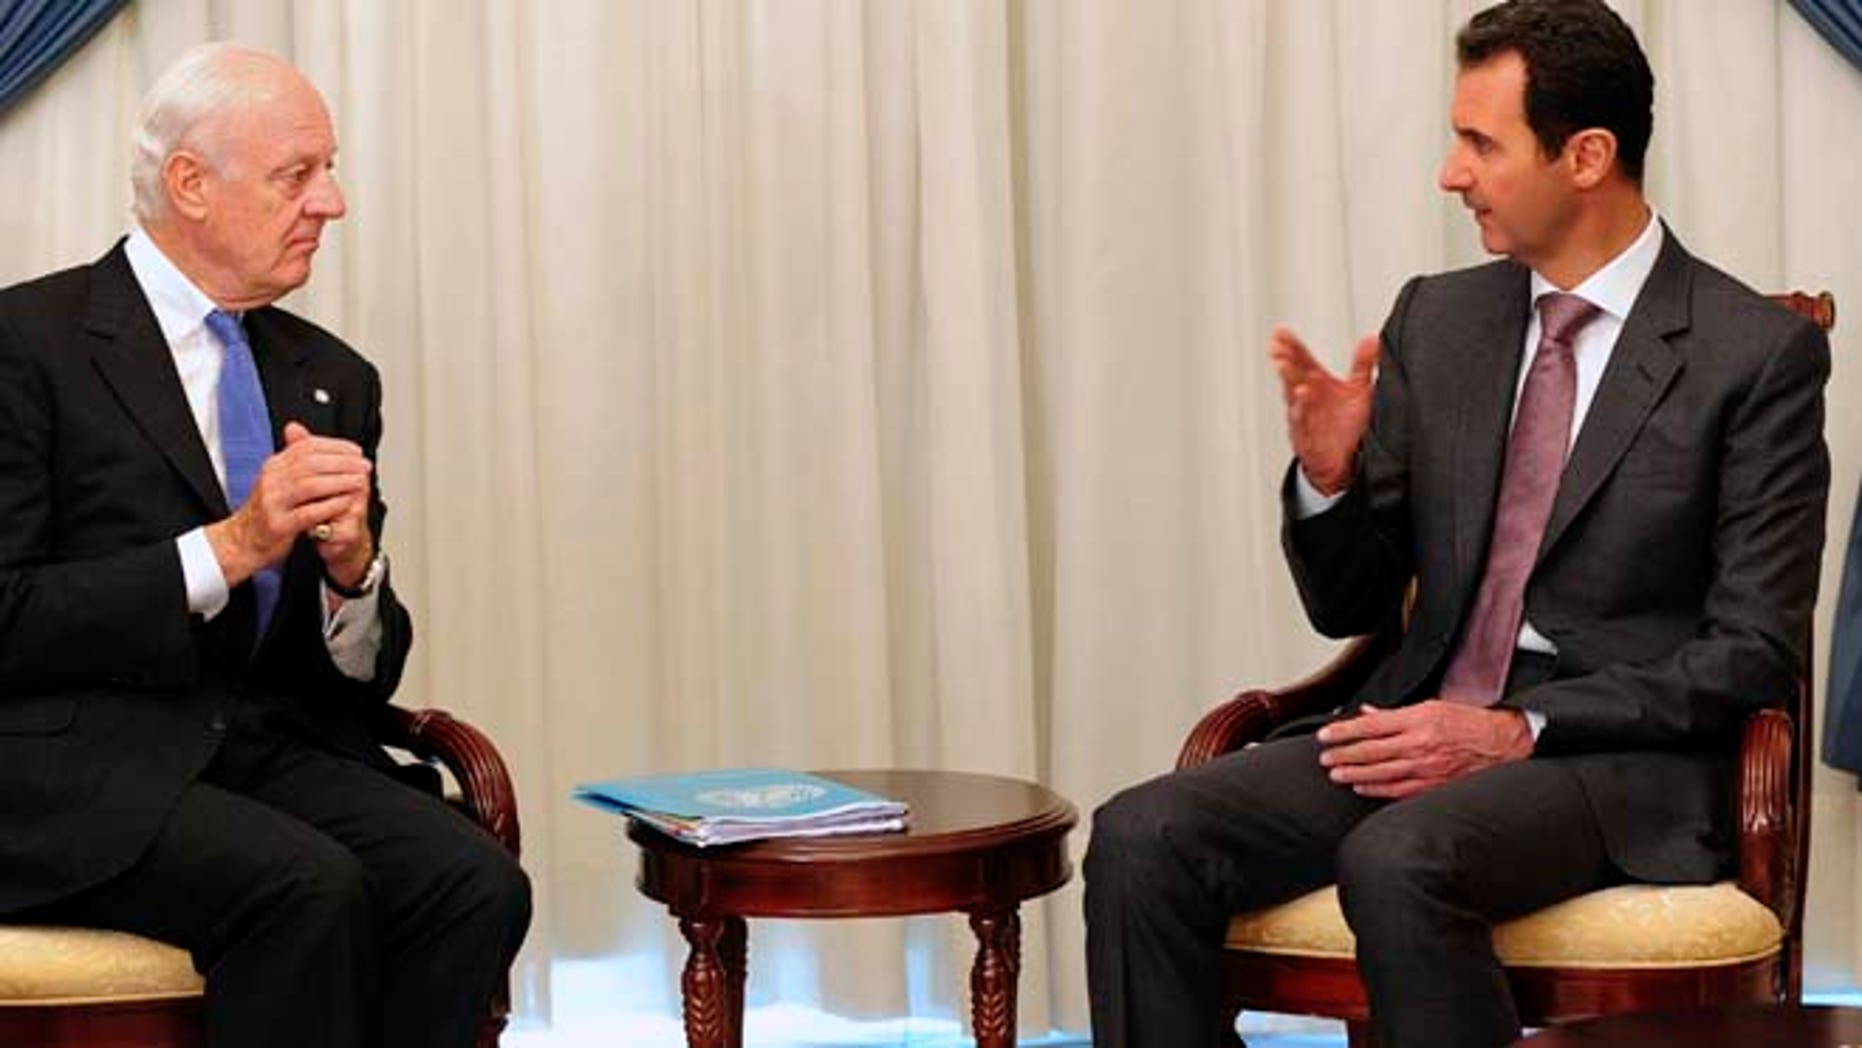 Nov. 10, 2014: In this photo released by the Syrian official news agency SANA, Syrian President Bashar Assad, right, speaks with United Nations special envoy to Syria Staffan de Mistura in Damascus, Syria. (AP/SANA)